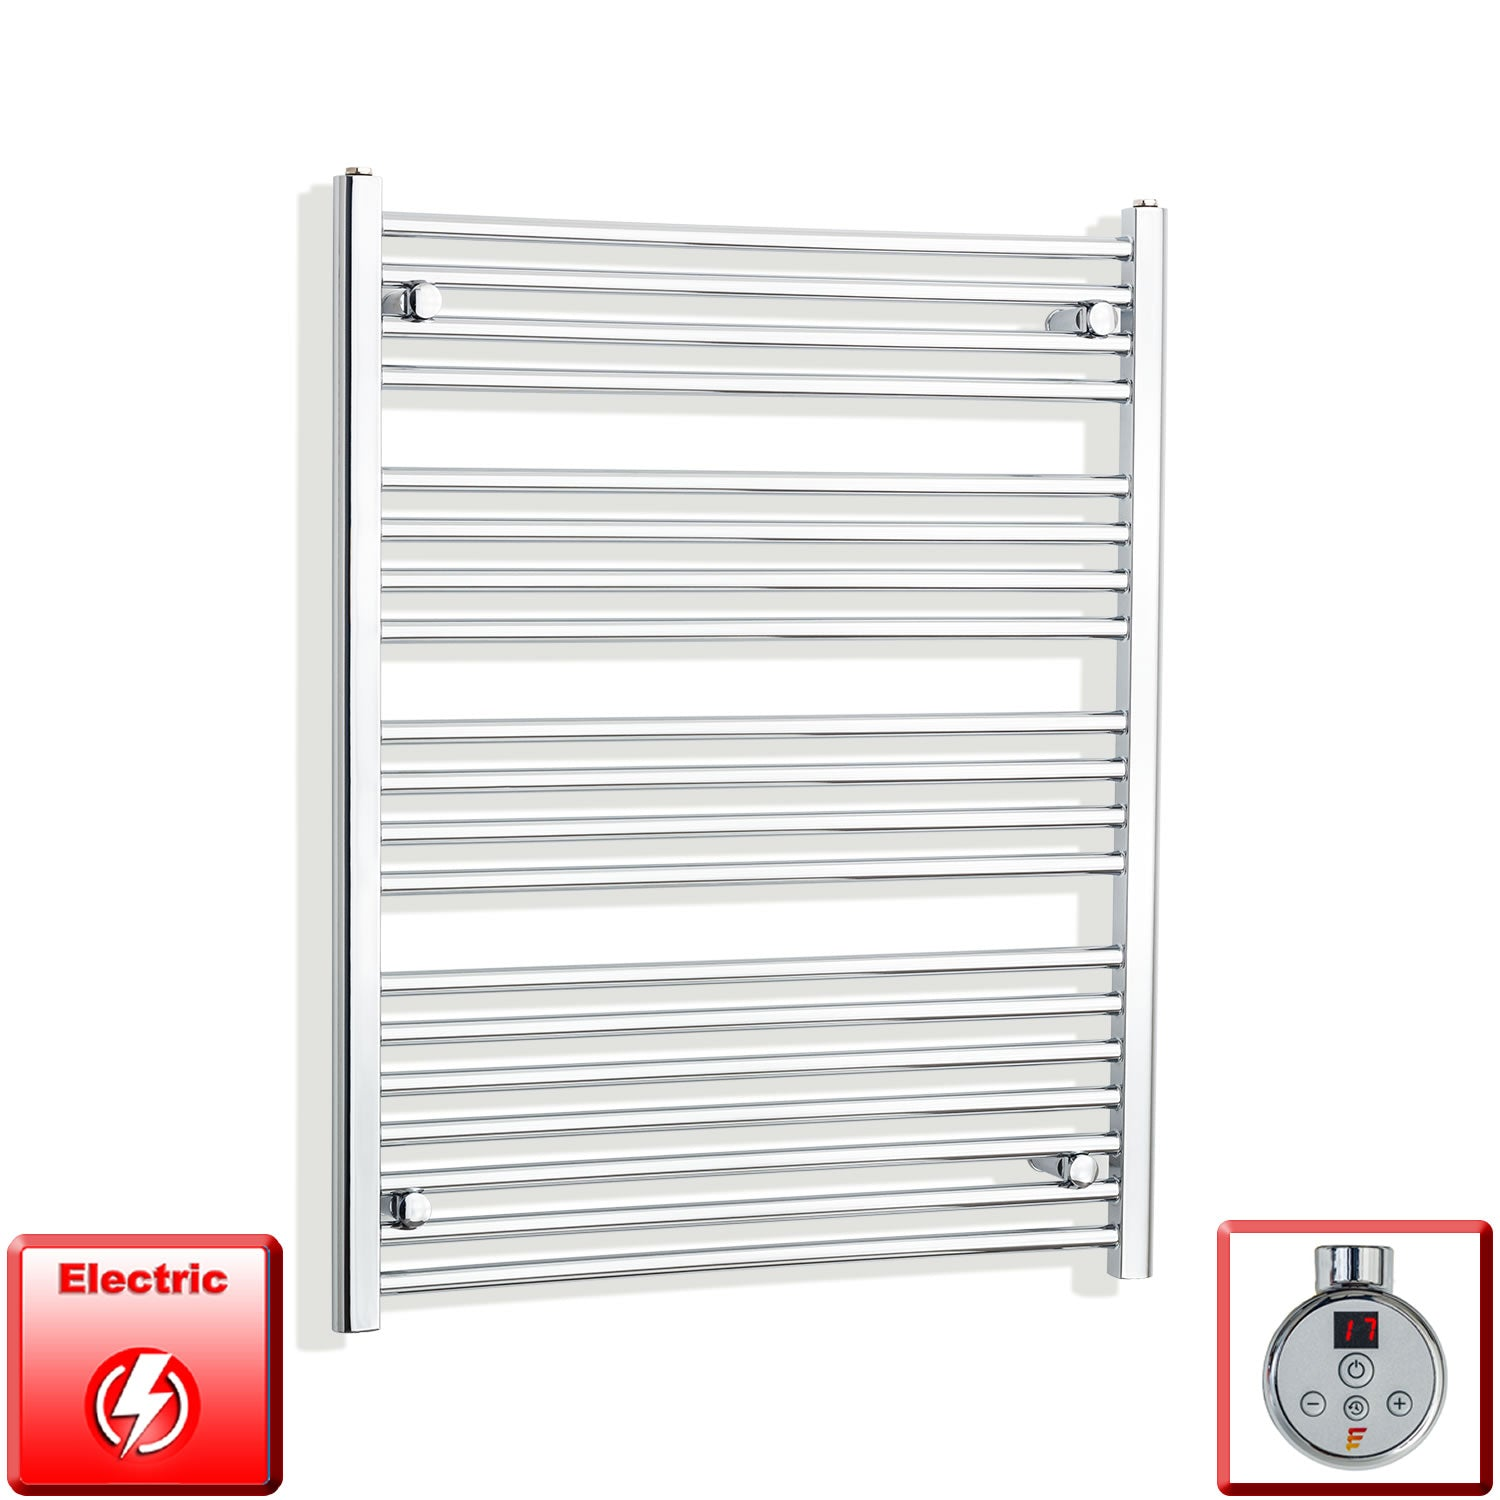 1000mm High 750mm Wide Pre-Filled Electric Heated Towel Rail Radiator Curved or Straight Chrome